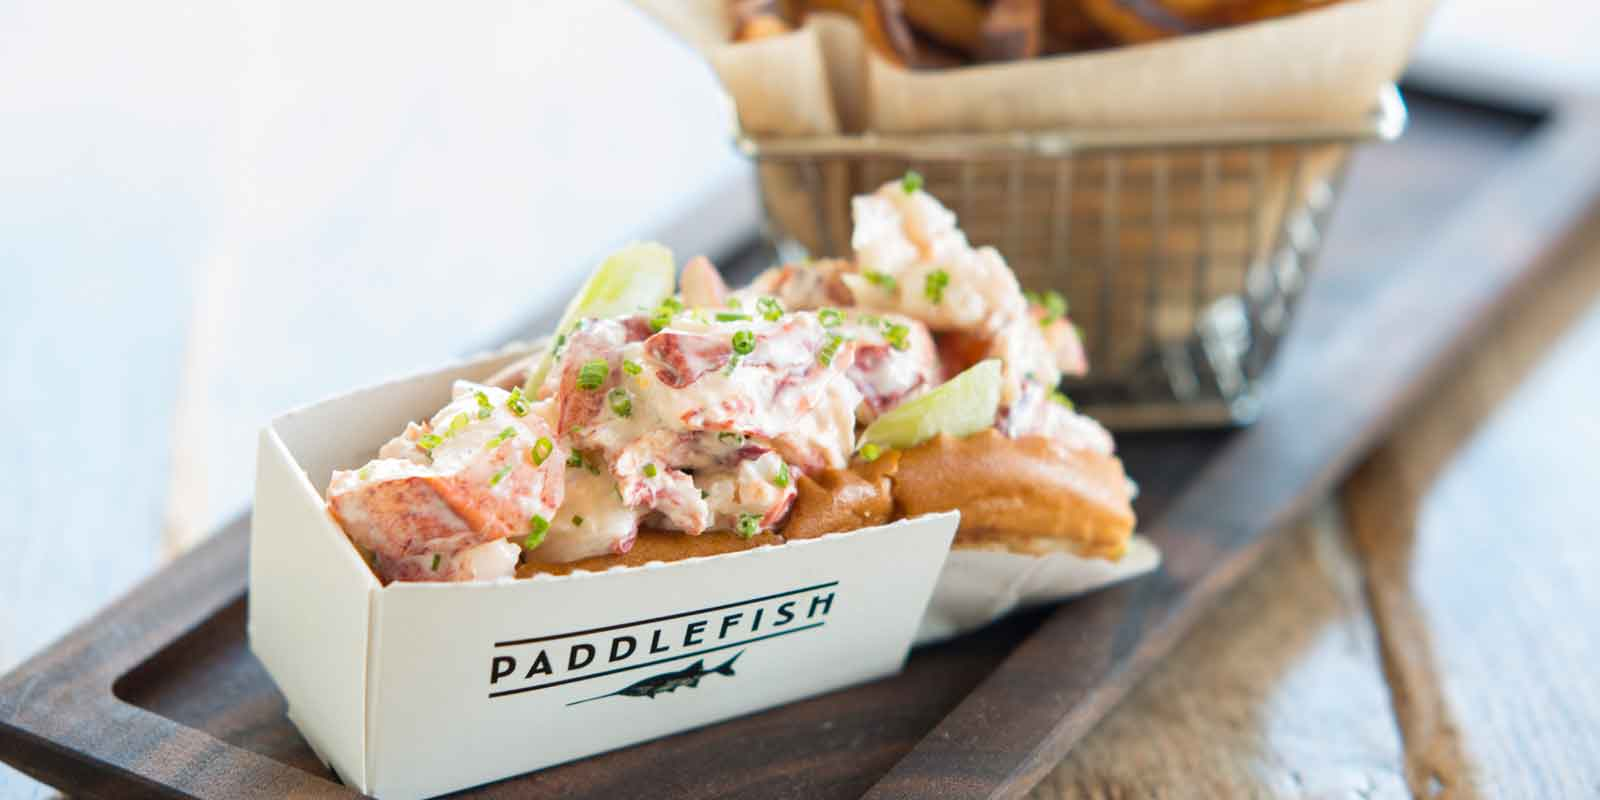 Close up of a lobster roll and bucket of french fries from Paddlefish.